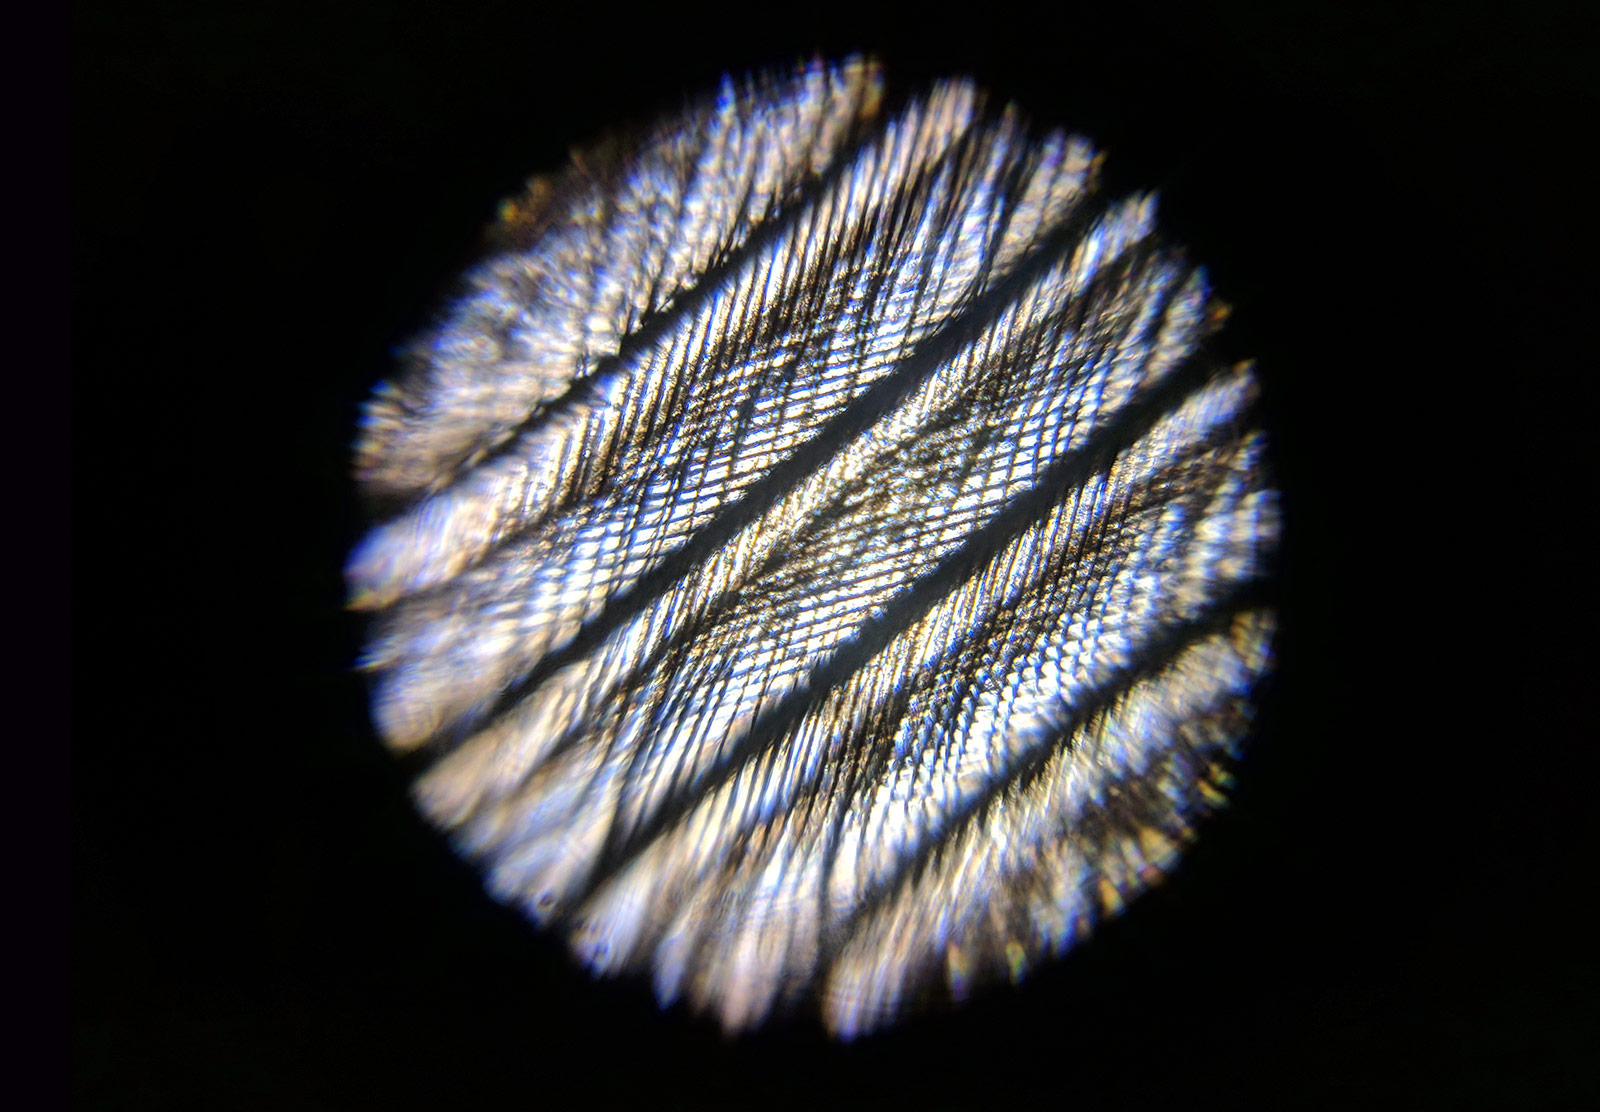 Feather fibres under microscope